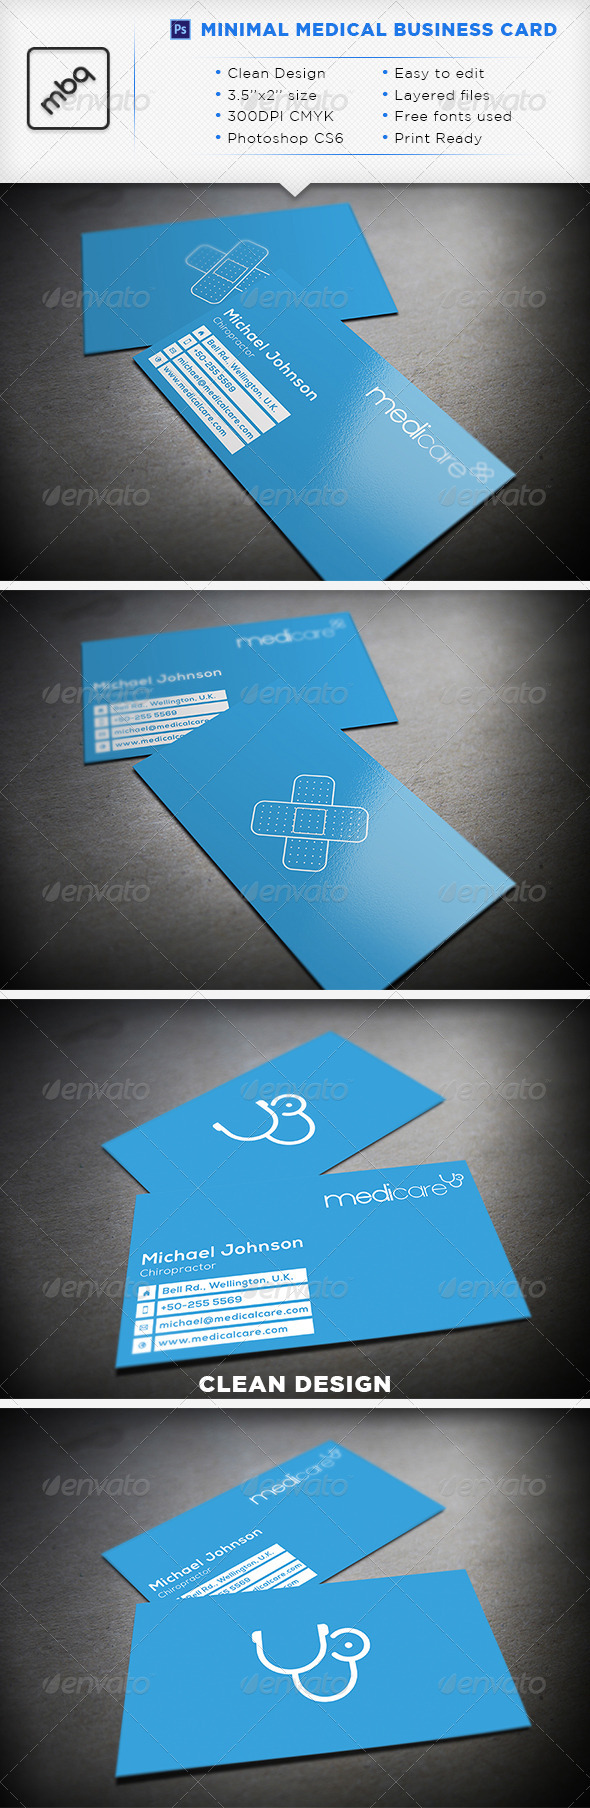 Minimal medical business card graphicriver minimal medical minimal medical business card graphicriver minimal medical business card fully editable d reheart Images